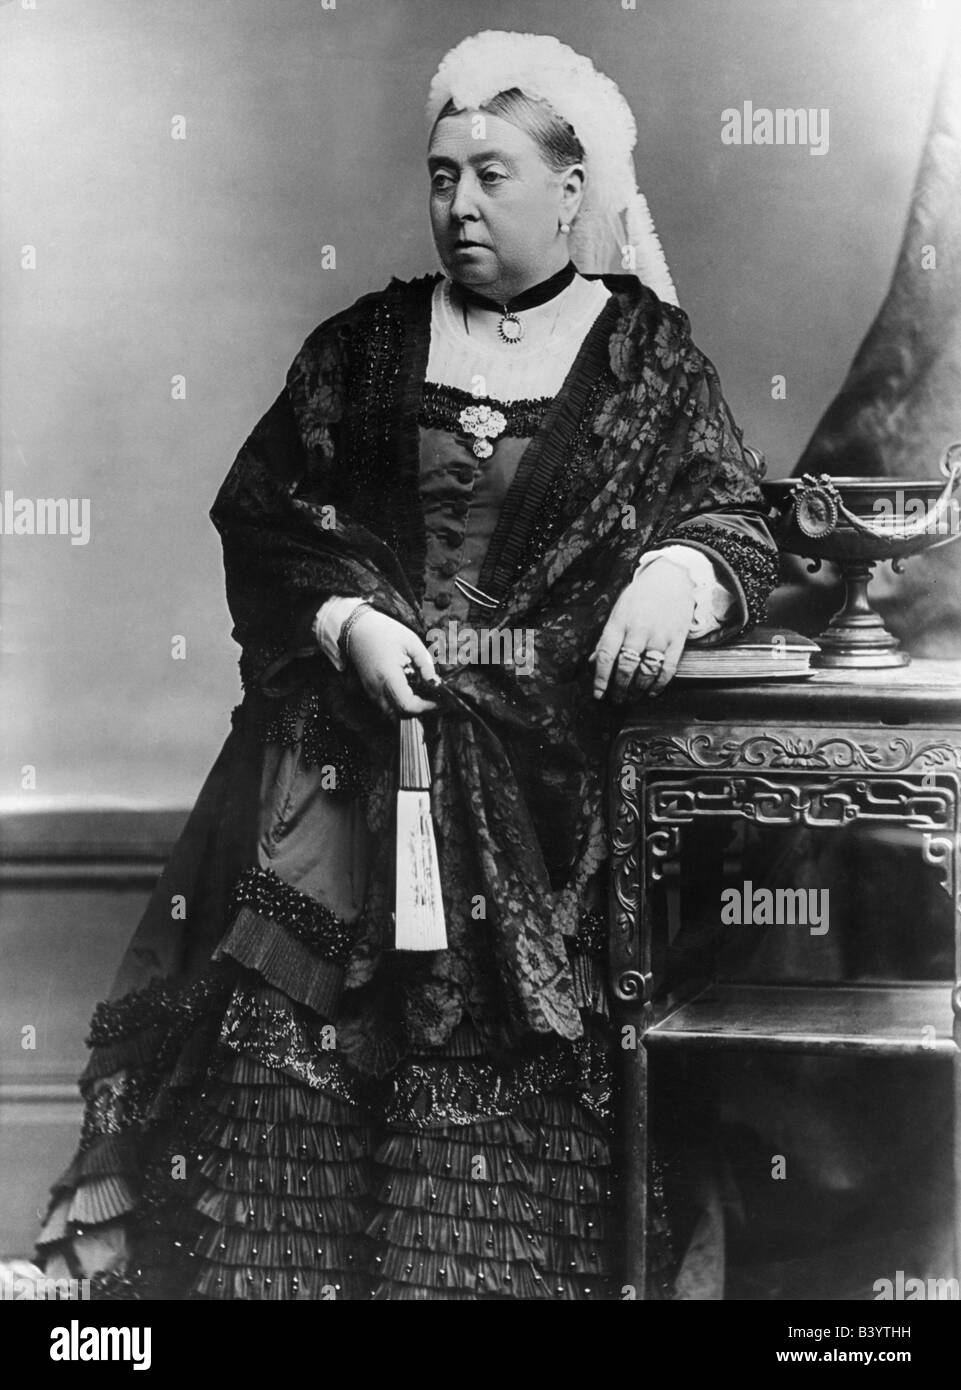 Victoria I, 24.5.1819 - 22.1.1901, Queen of Great Britain and Ireland 1837 - 1901, half length, circa 1890, Additional - Stock Image